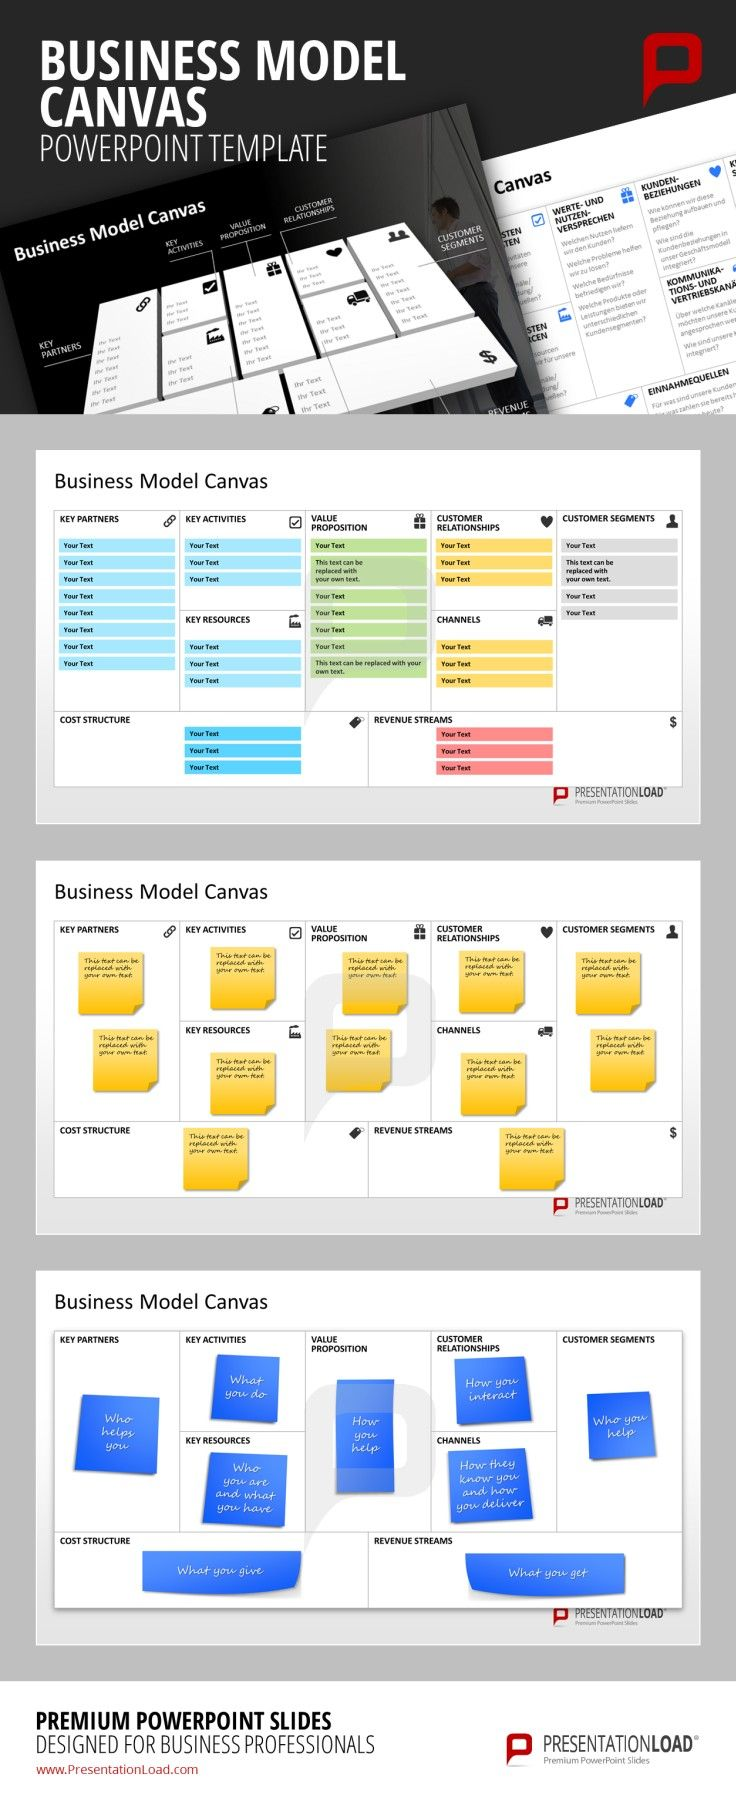 Business model canvas powerpoint template strategically plan and business model canvas powerpoint template strategically plan and present your business model with the business model canvas template set for powerpoint toneelgroepblik Choice Image